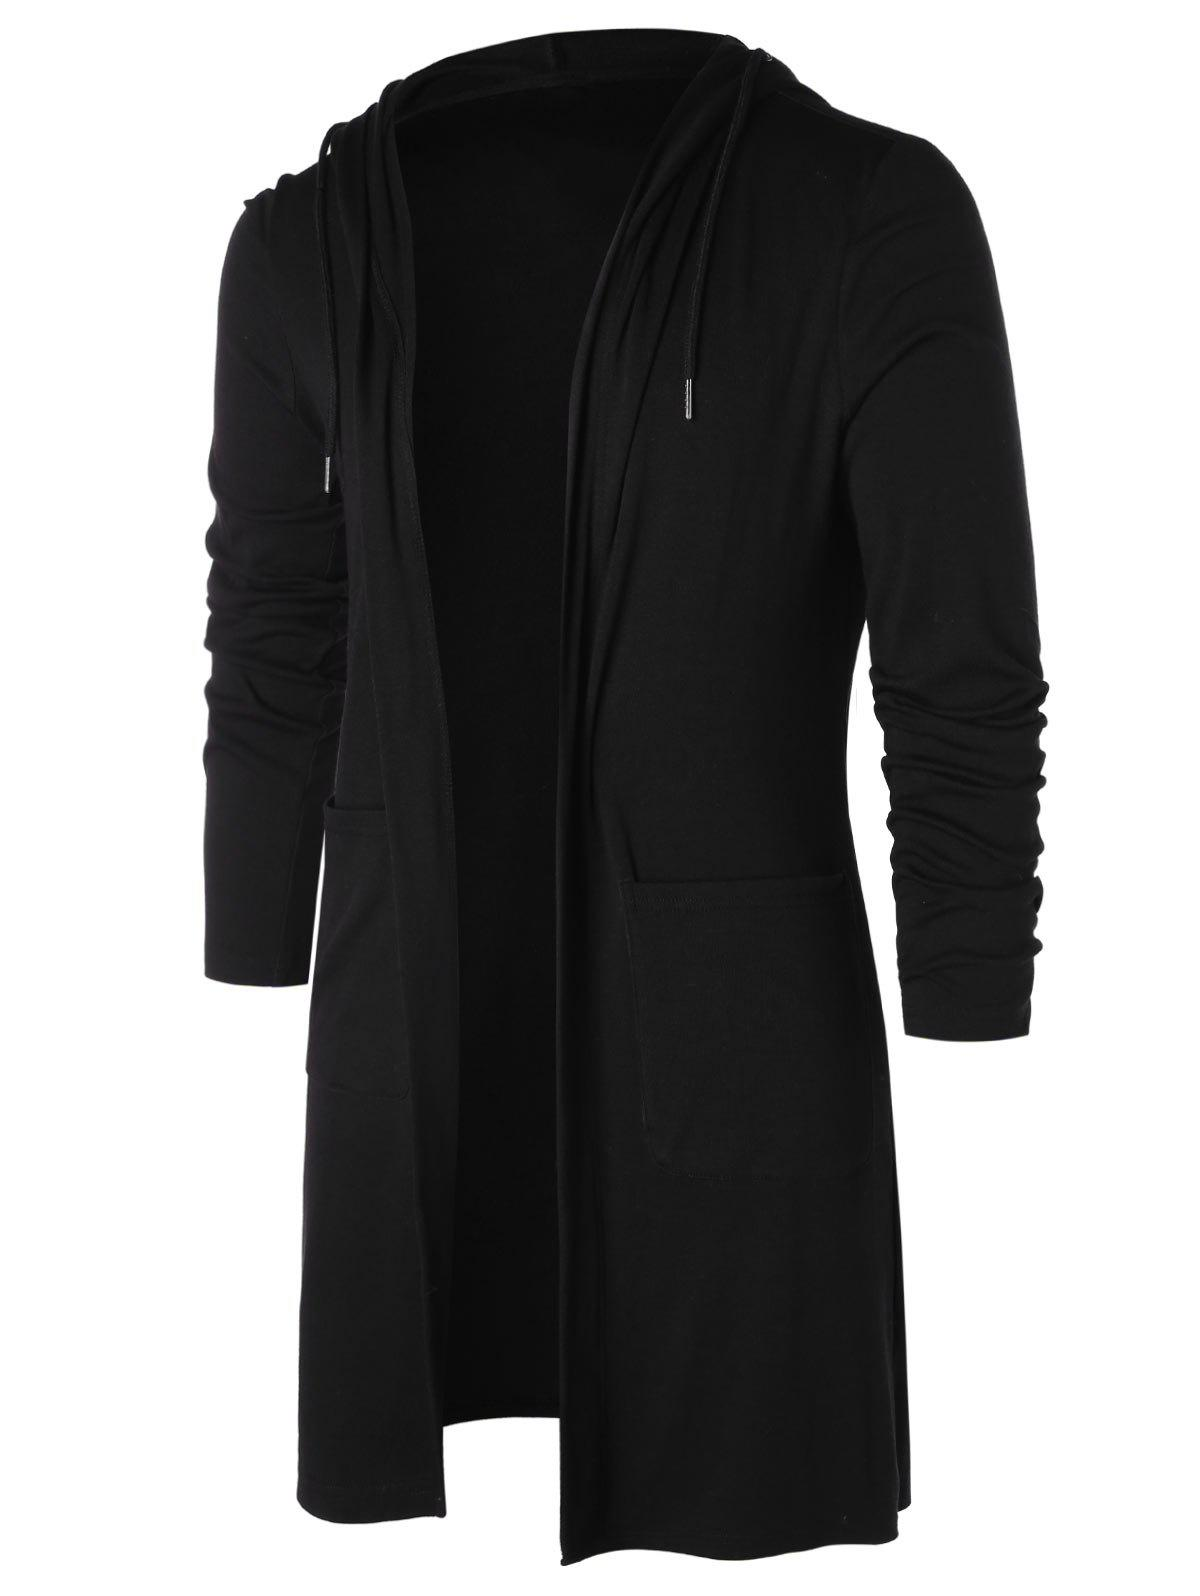 Store Longline Open Front Hooded Cardigan